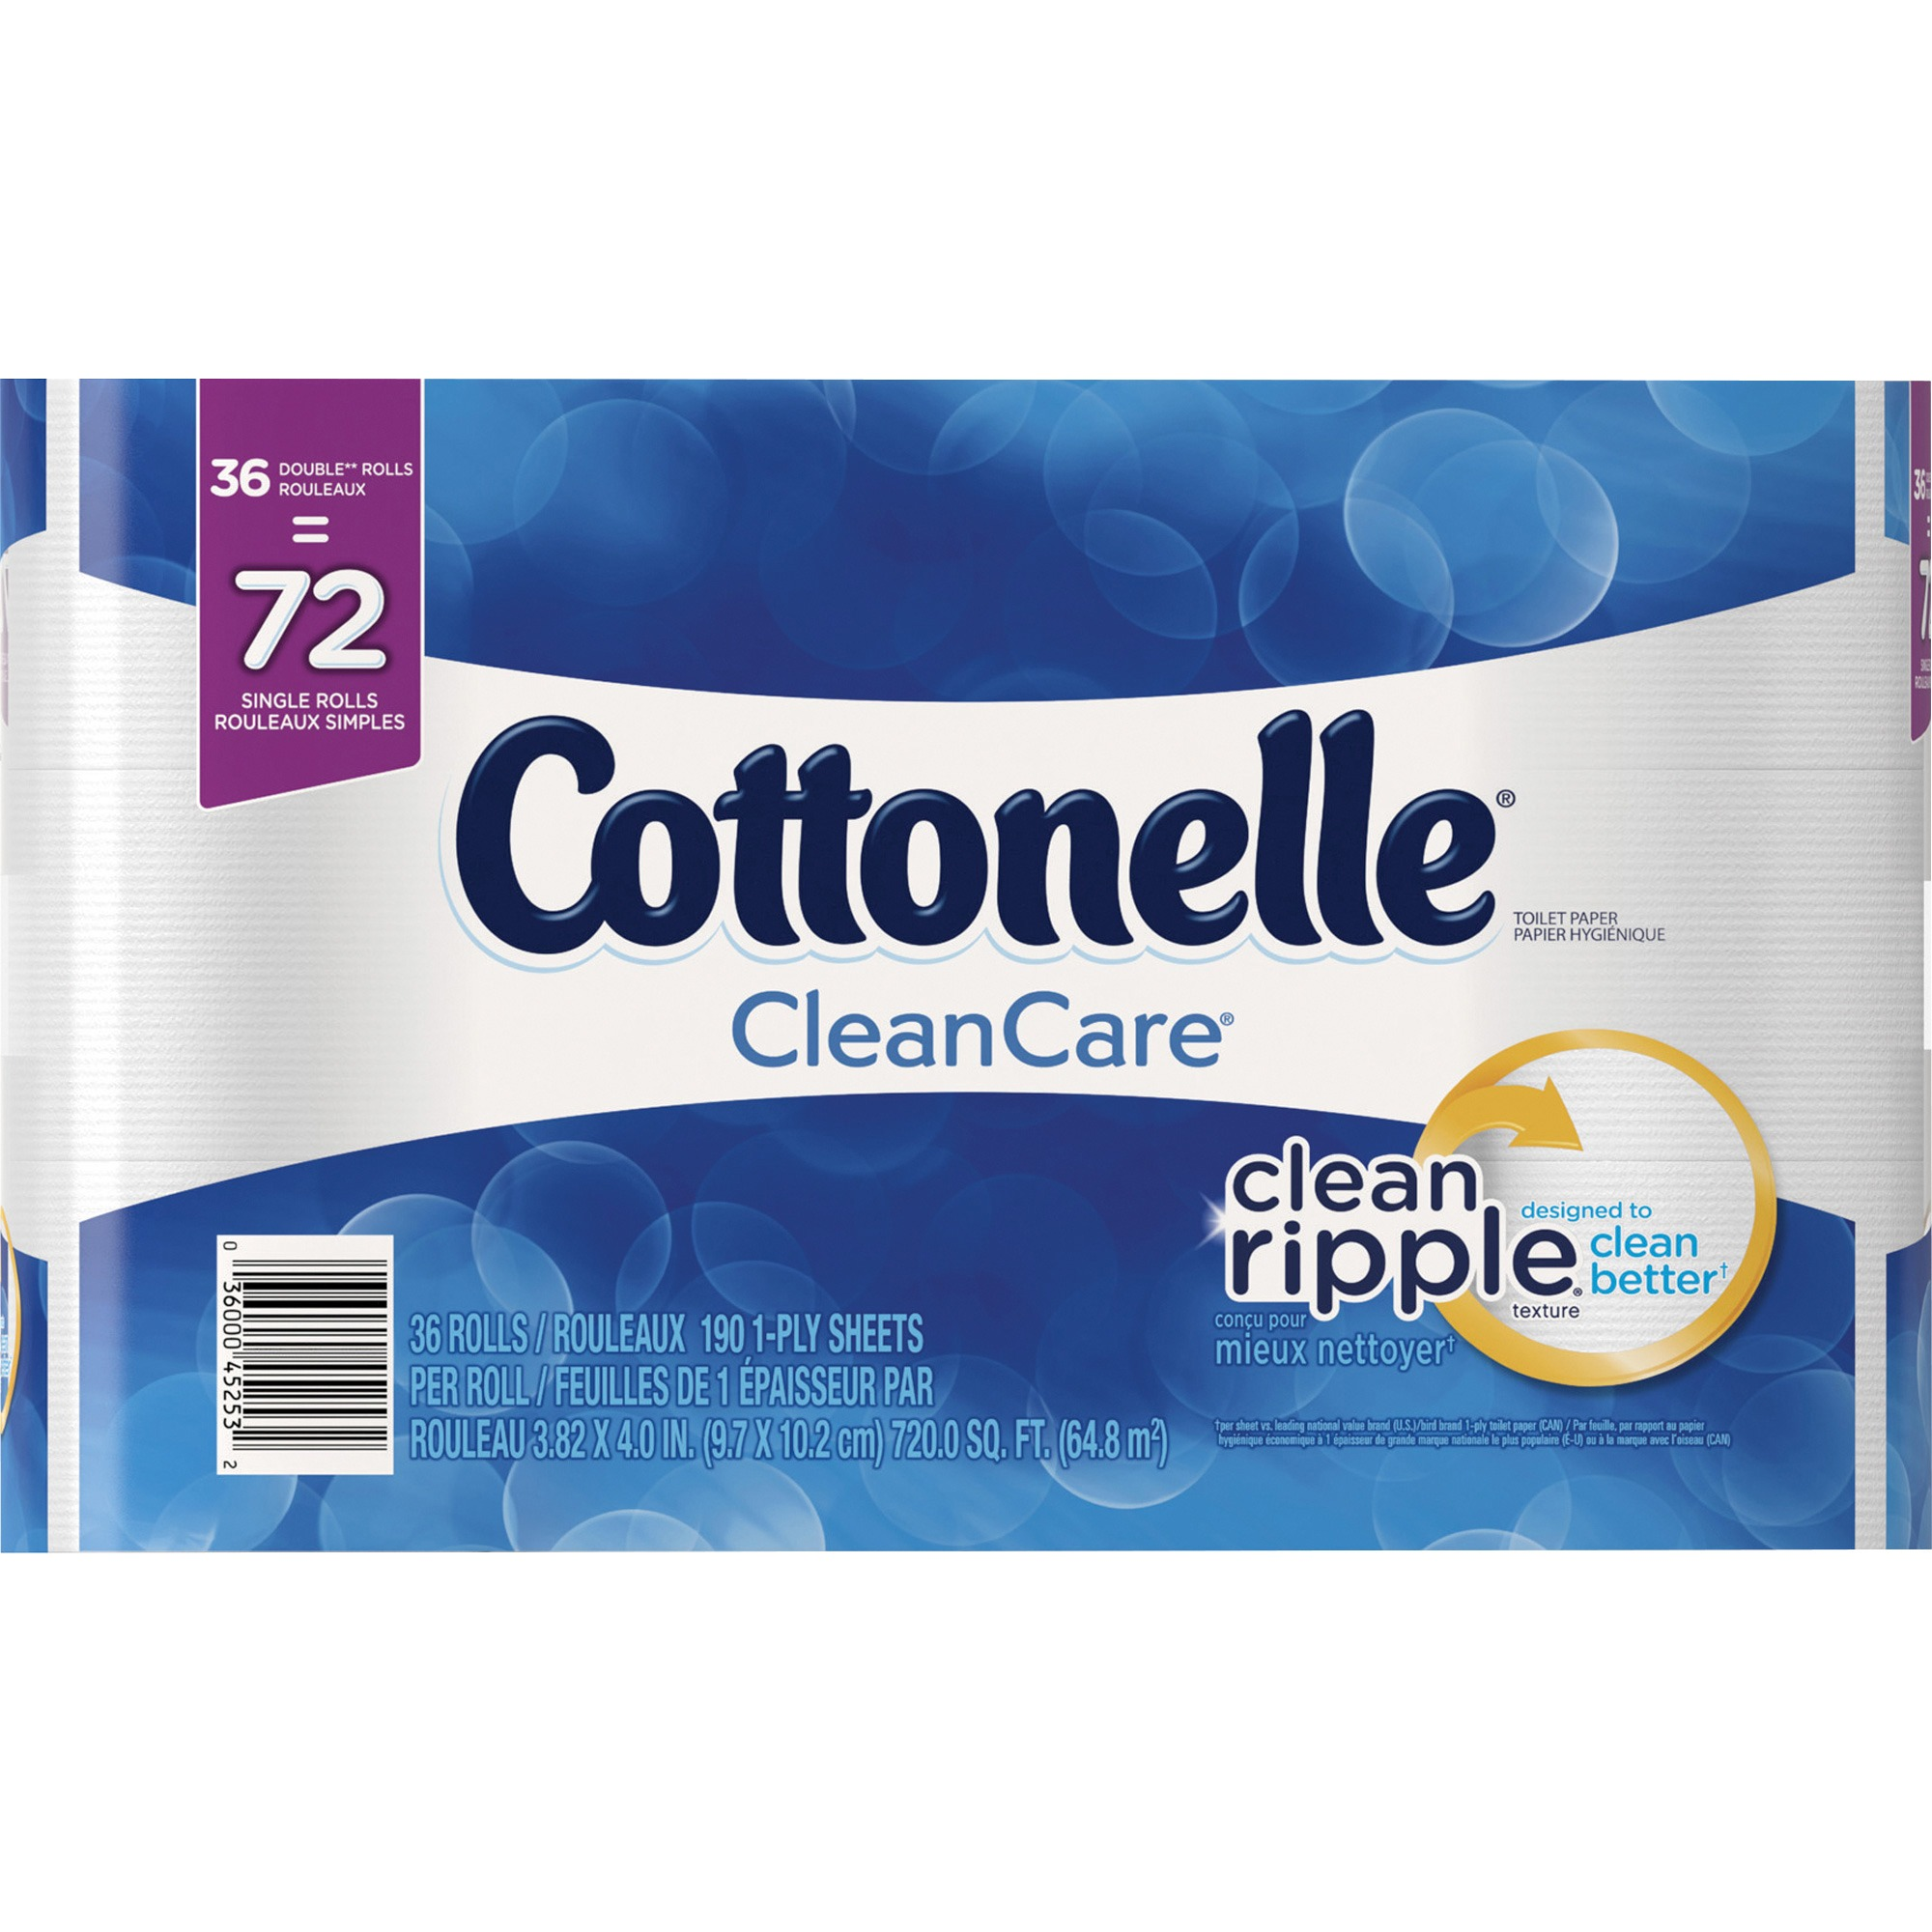 Cottonelle Clean Care Toilet Paper, 36 Double Rolls